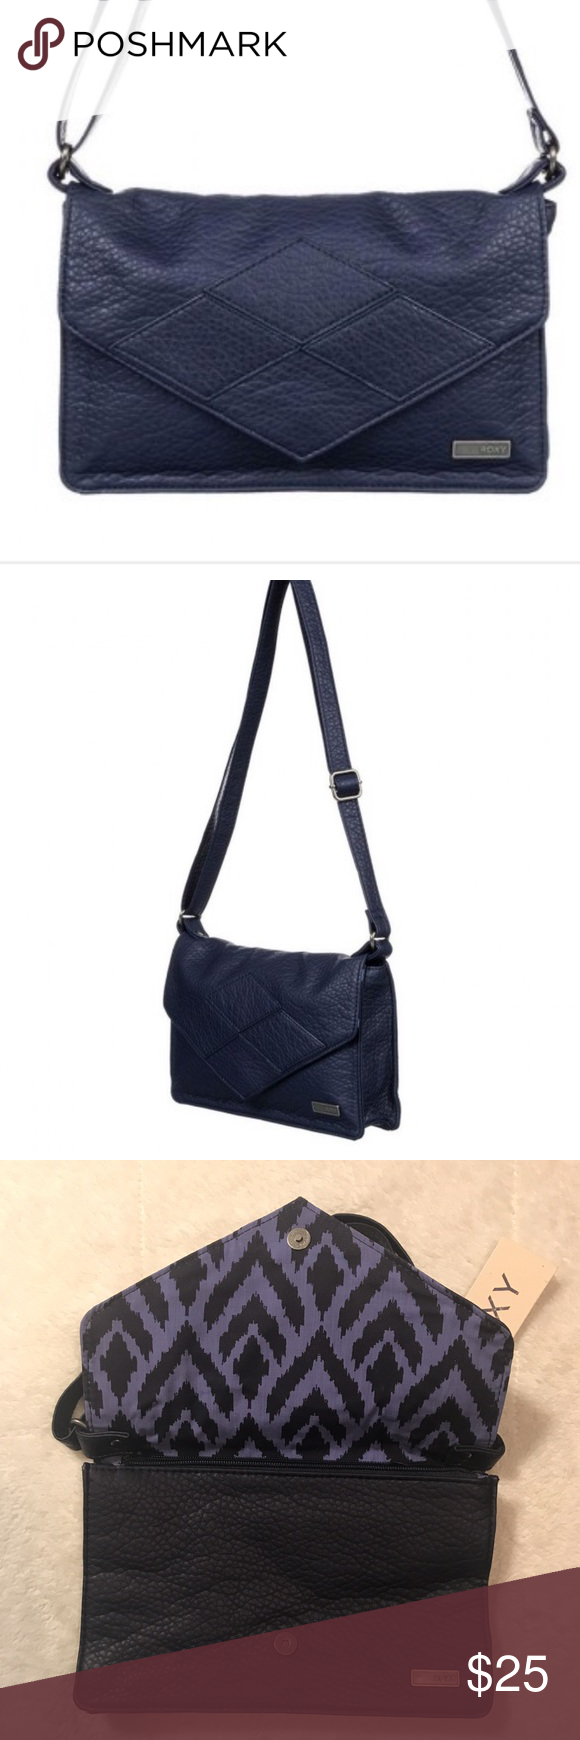 72acc703f Roxy In The Plan Messenger This purse is a sleek flap over style shoulder  bag with